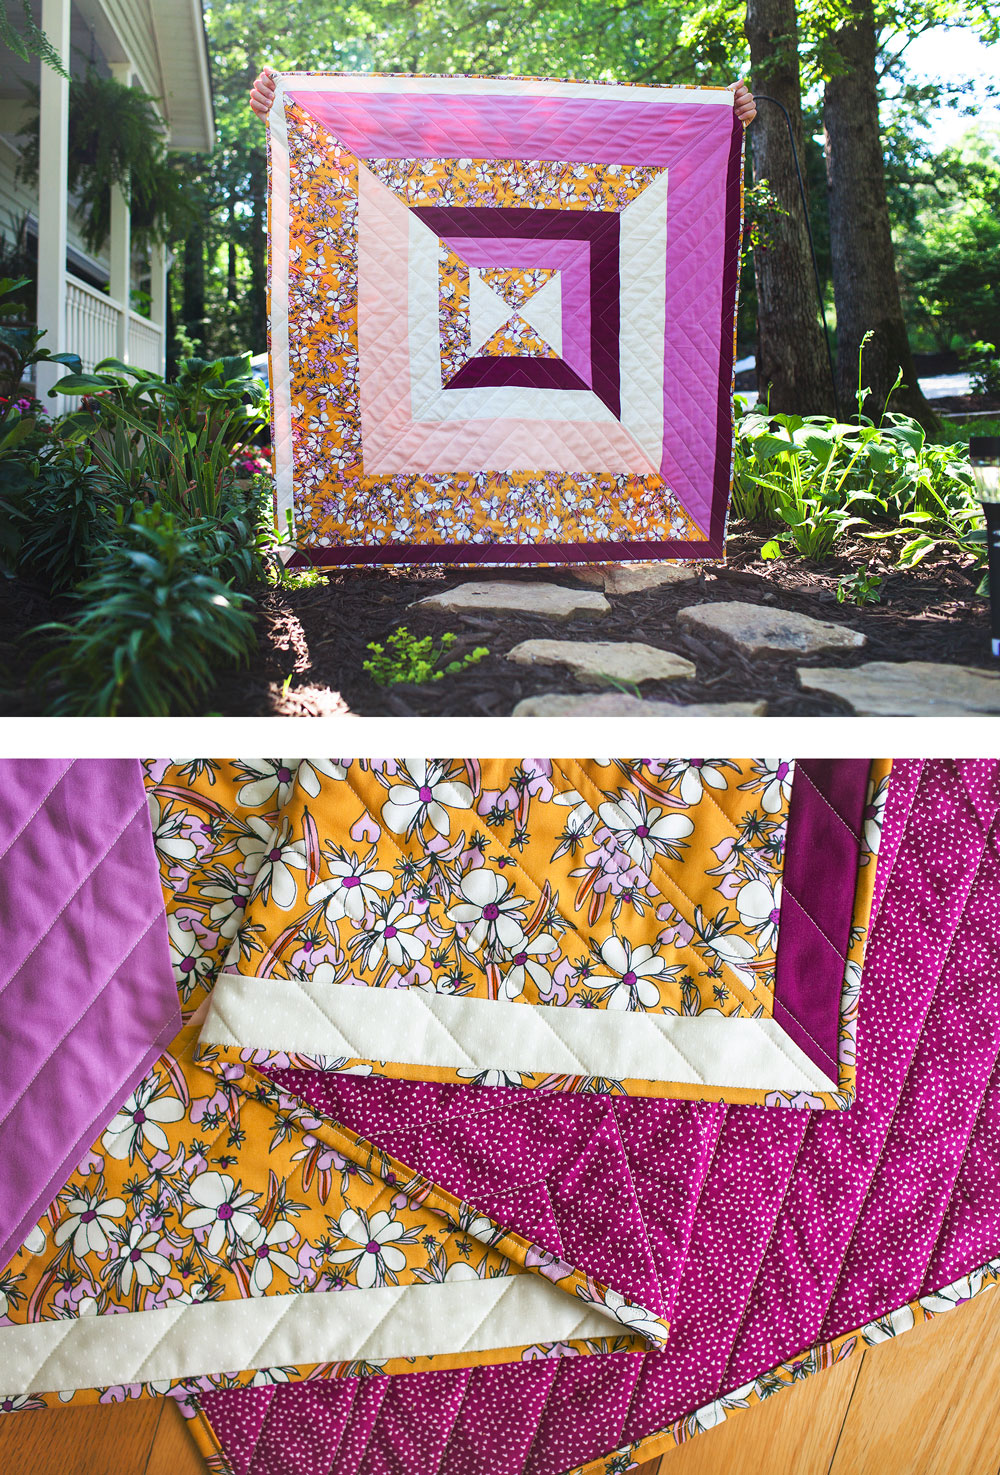 The Reflections Quilt Pattern: A Modern Strip Quilt - Suzy